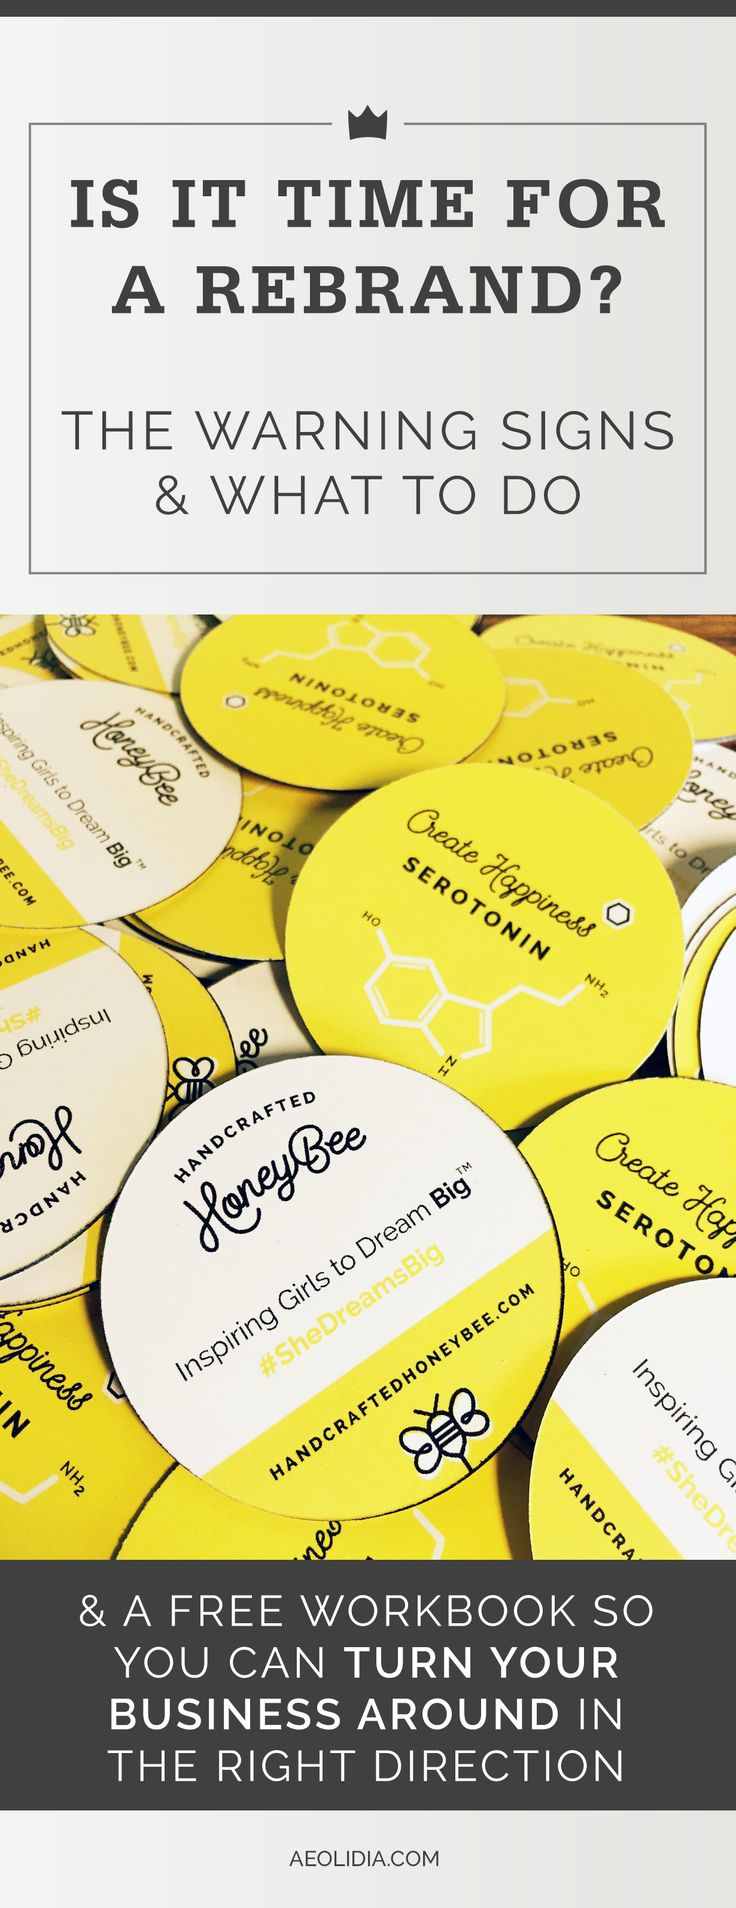 Handcrafted HoneyBee, a skincare kit brand, realized they were selling to the wrong audience. They took stock and decided to completely rebrand their business from the ground up.